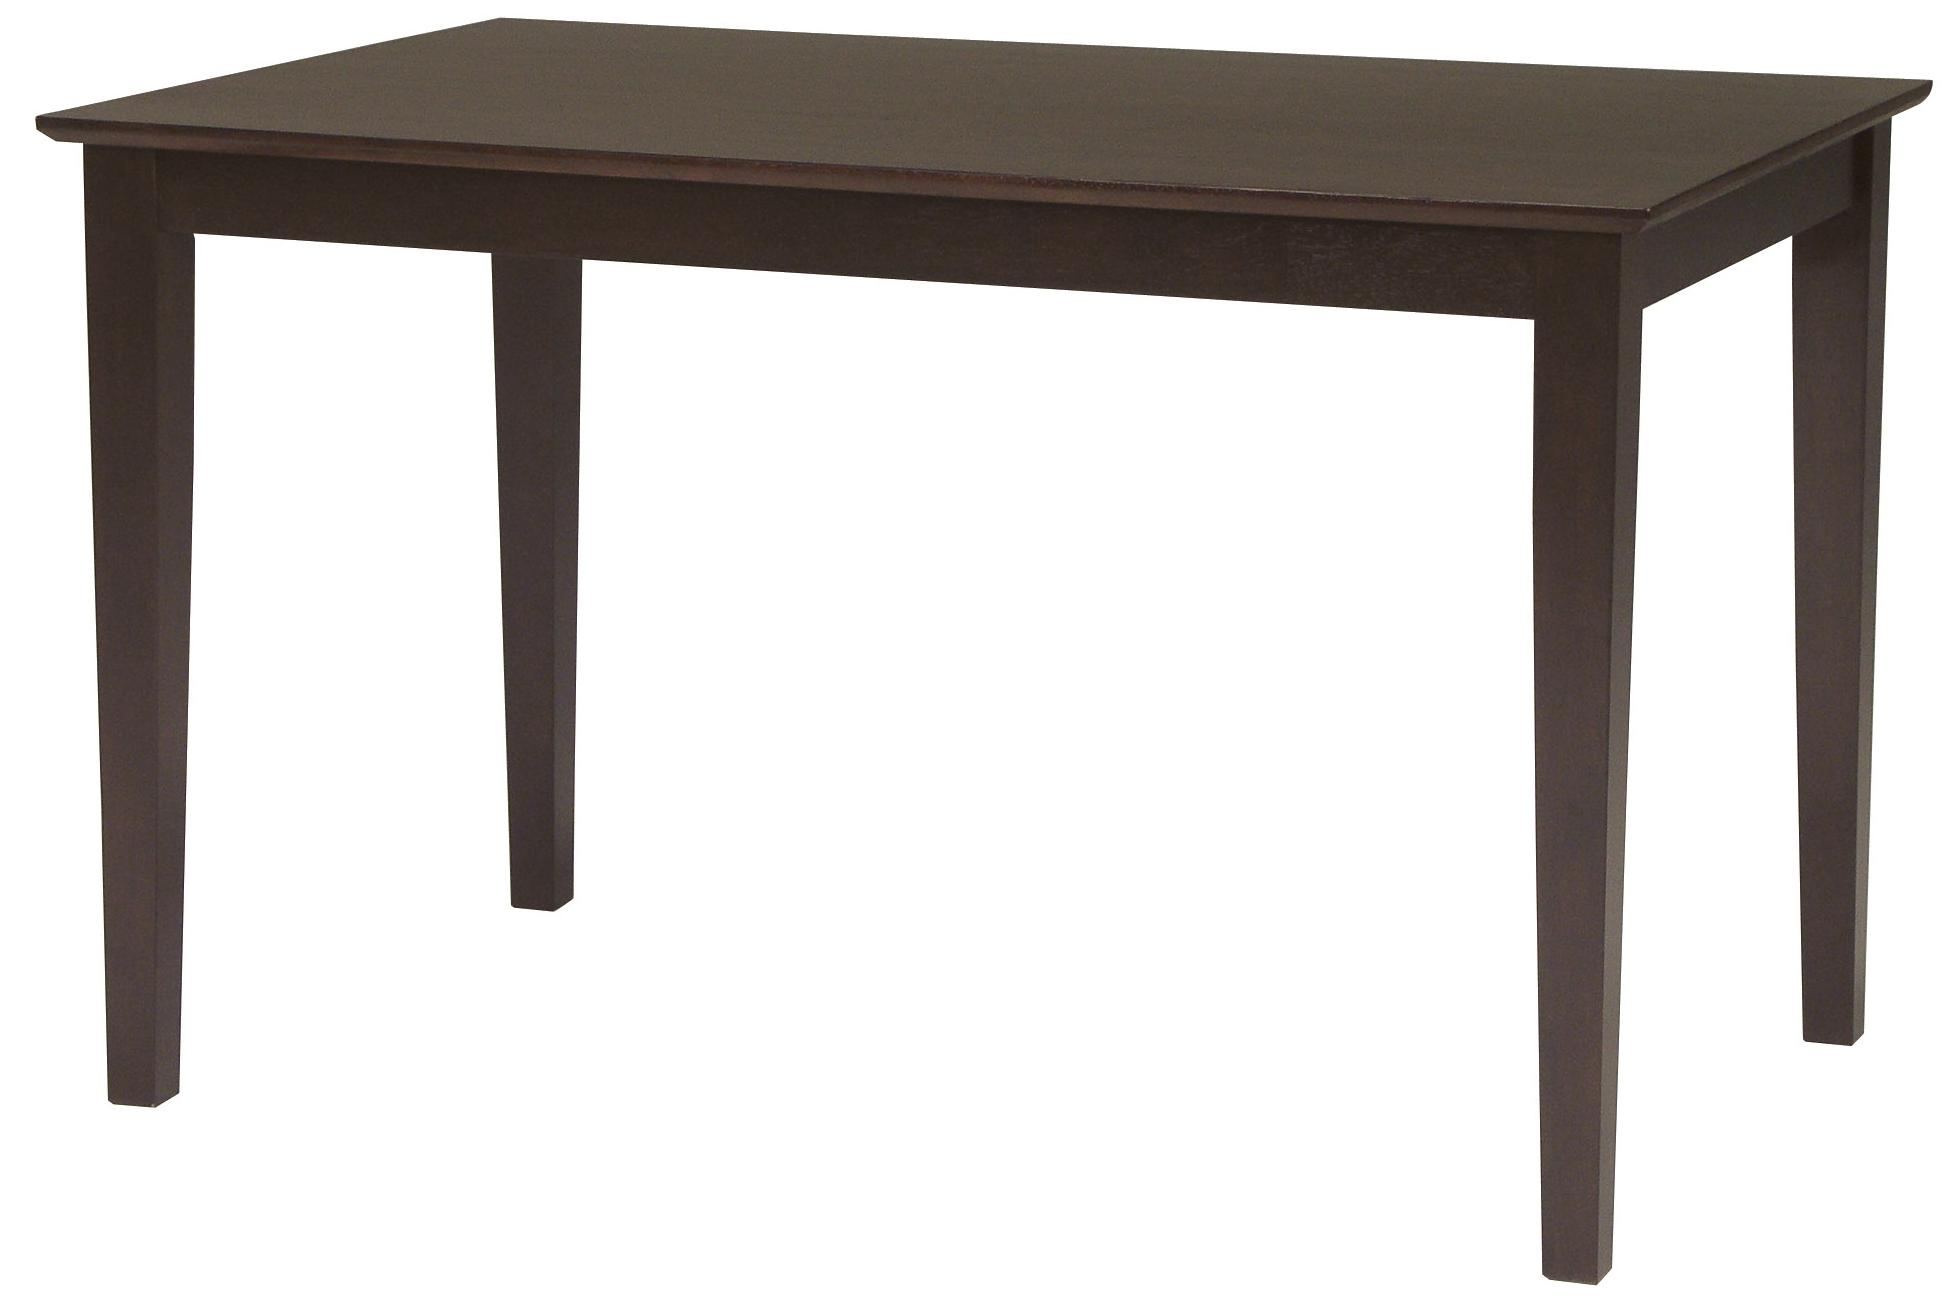 John Thomas Dining Essentials Contemporary Rectangular Dining Table - Item Number: T15-3048S